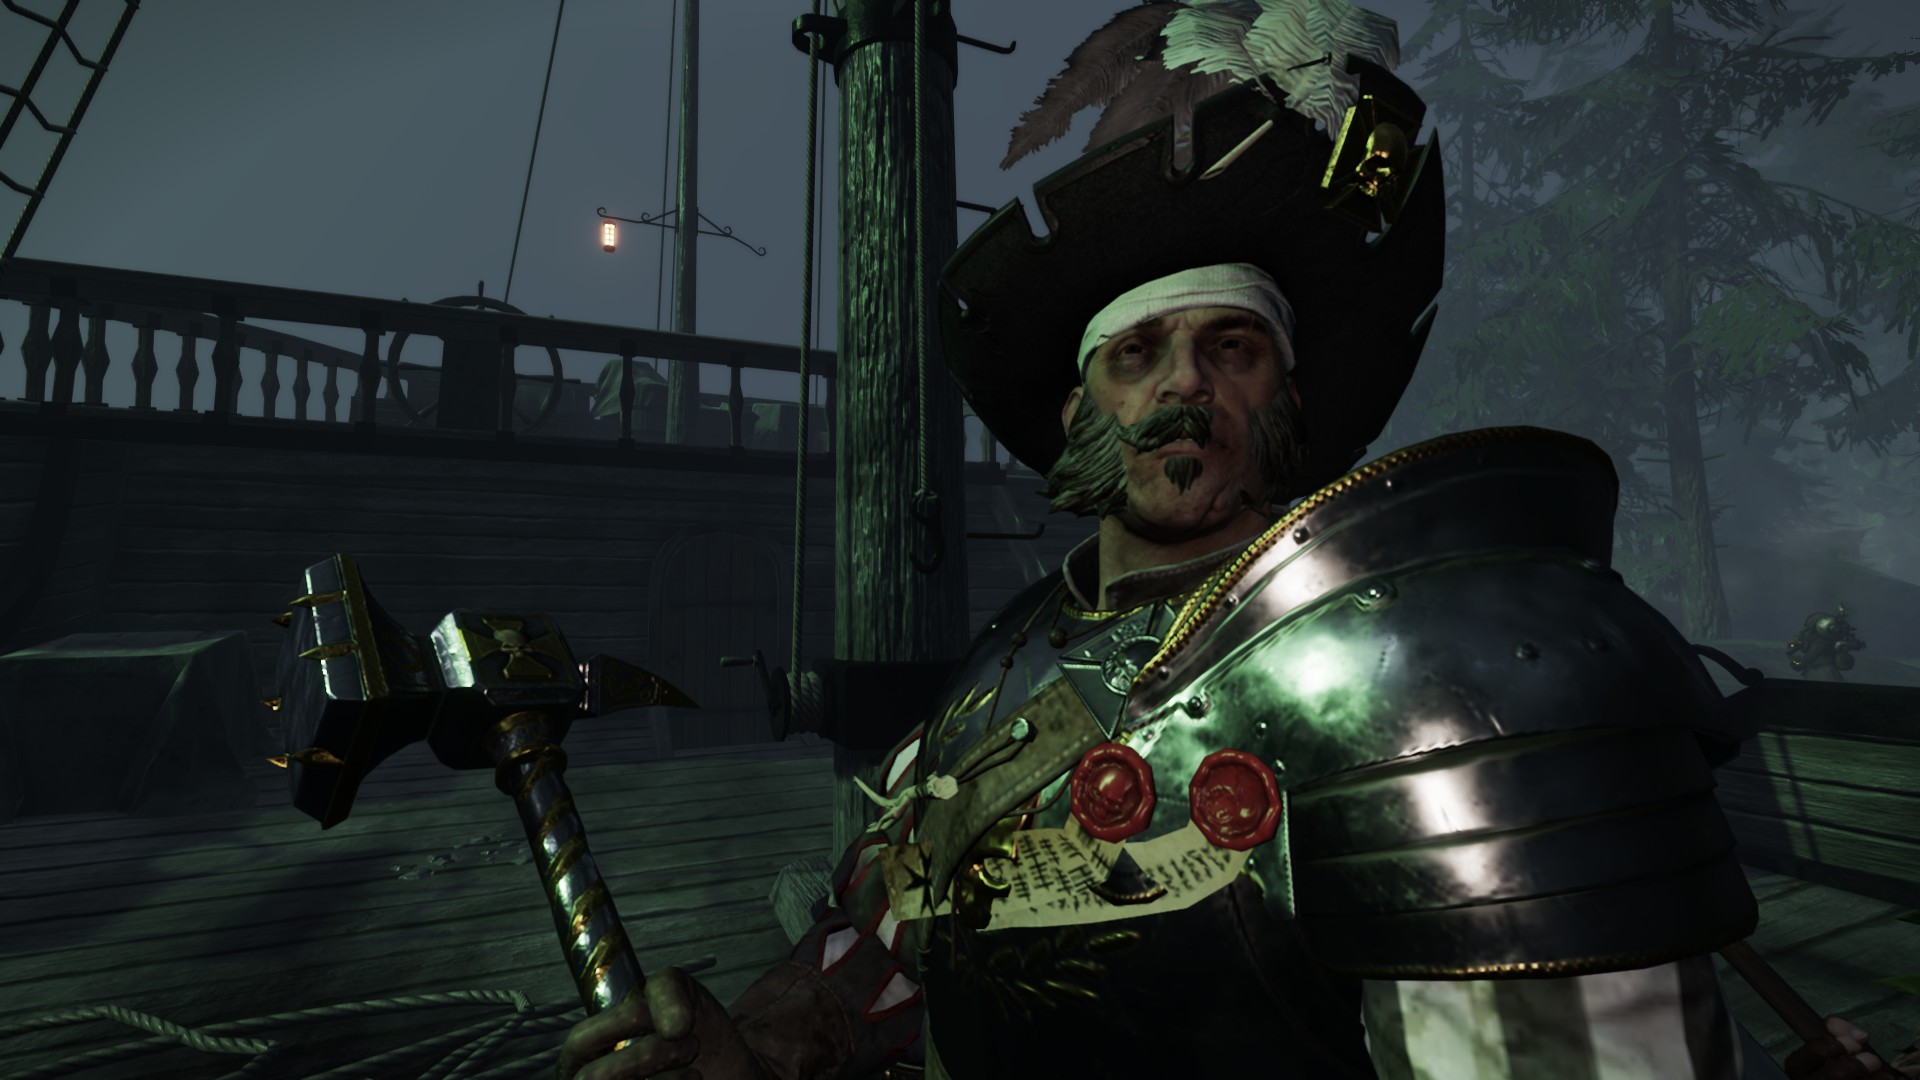 Here's what modders are planning for Vermintide 2 | PC Gamer